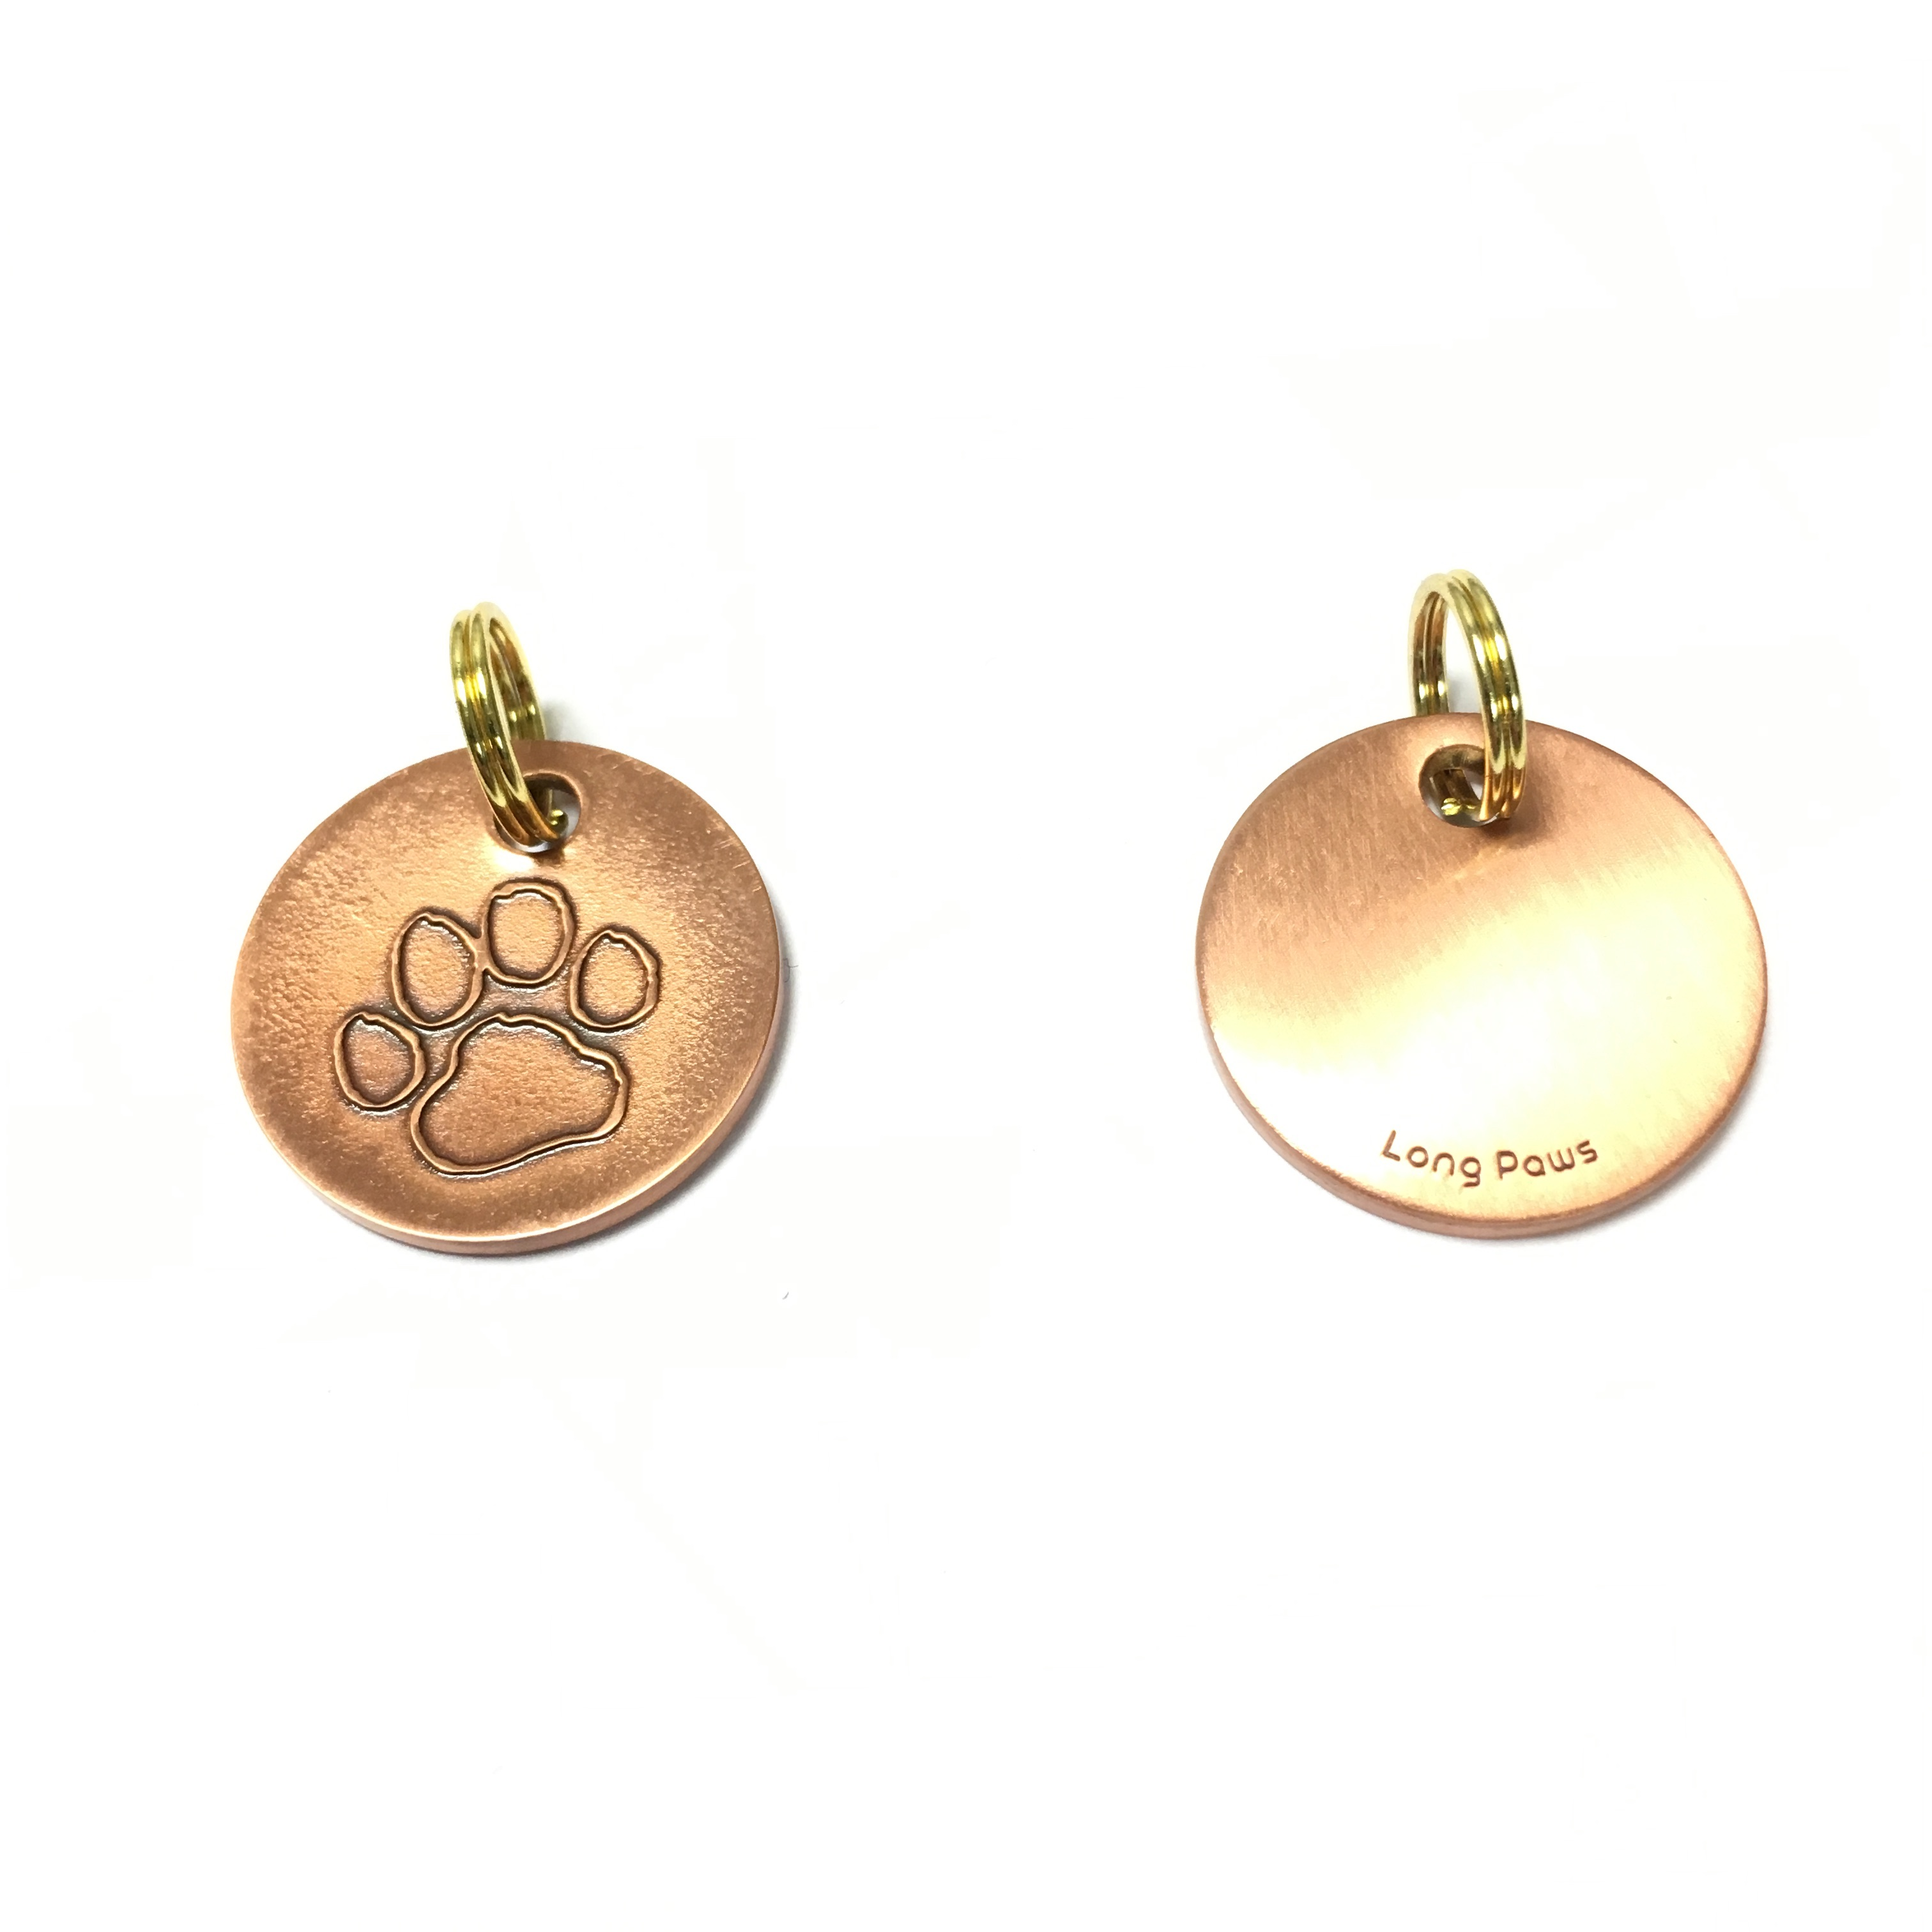 Long Paws Antique Copper Dog tag with a Paw Design Image